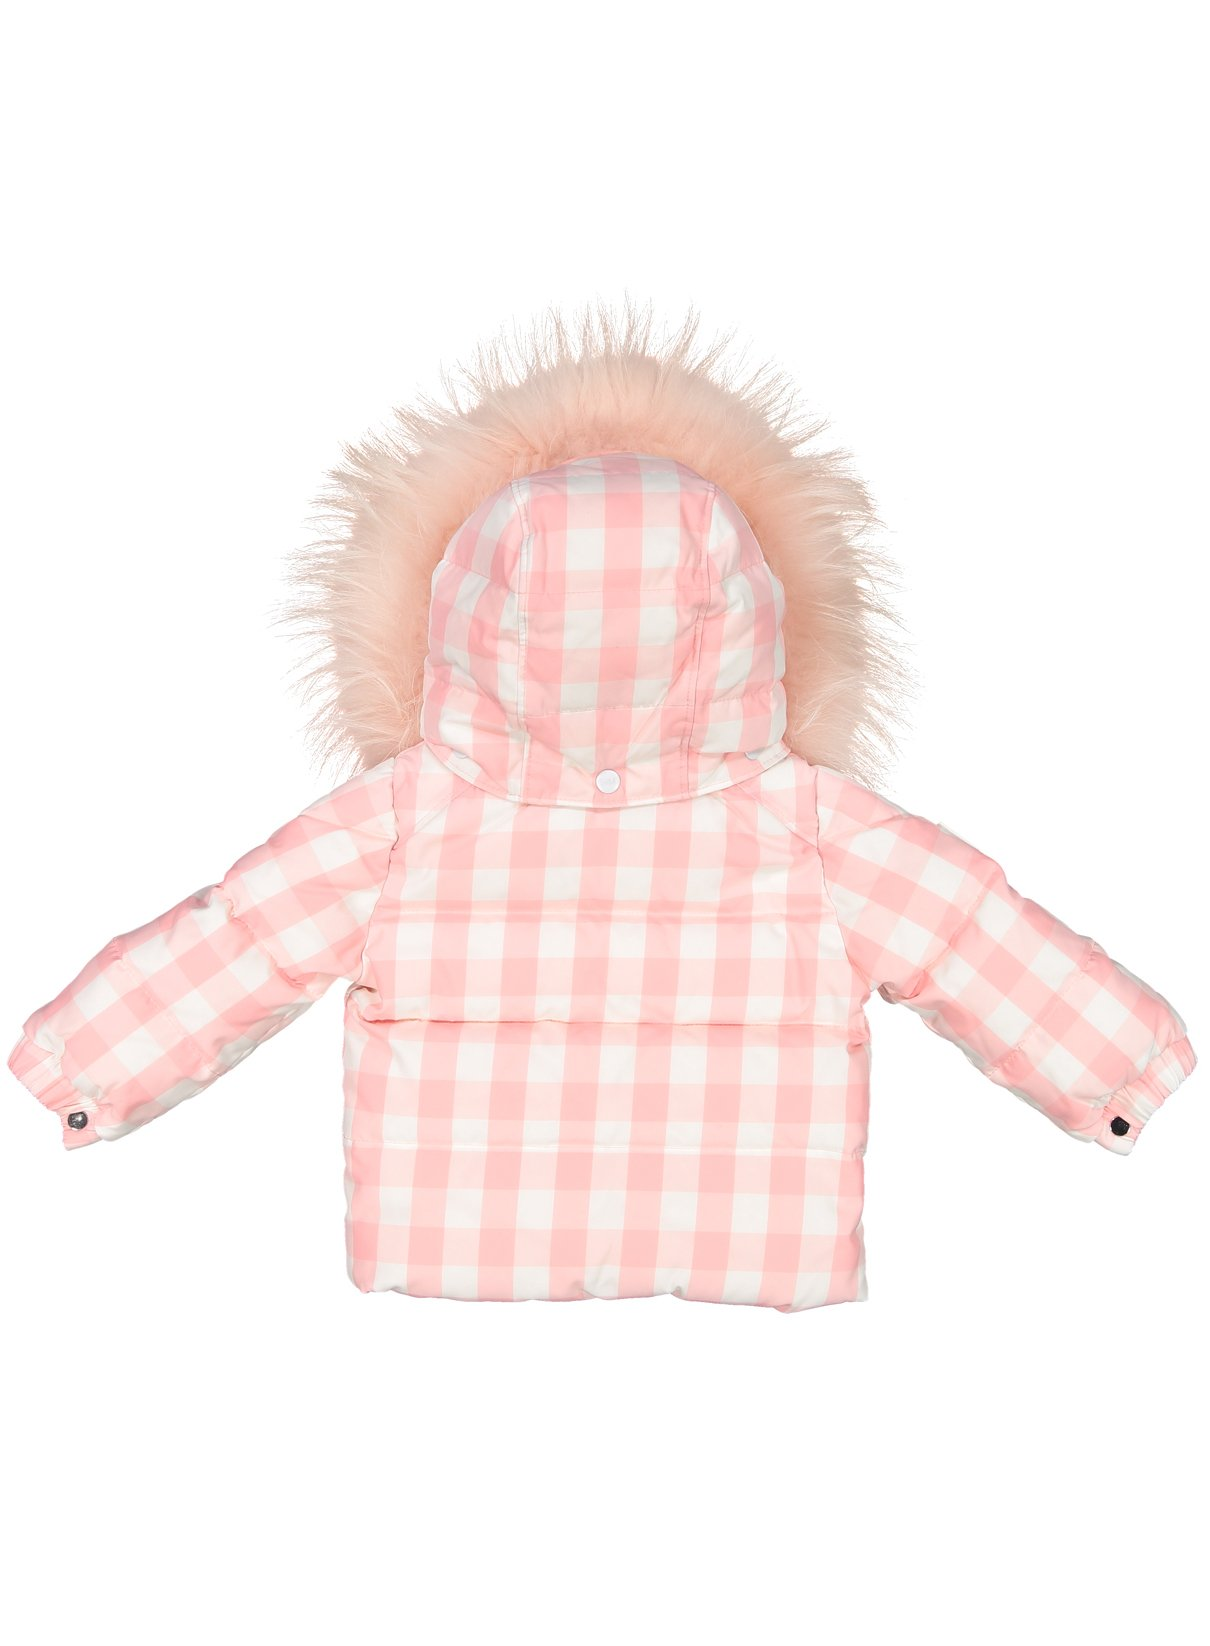 GINGHAM SNOWBUNNY GINGHAM SNOWBUNNY - SAM. New York Sam nyc jacket